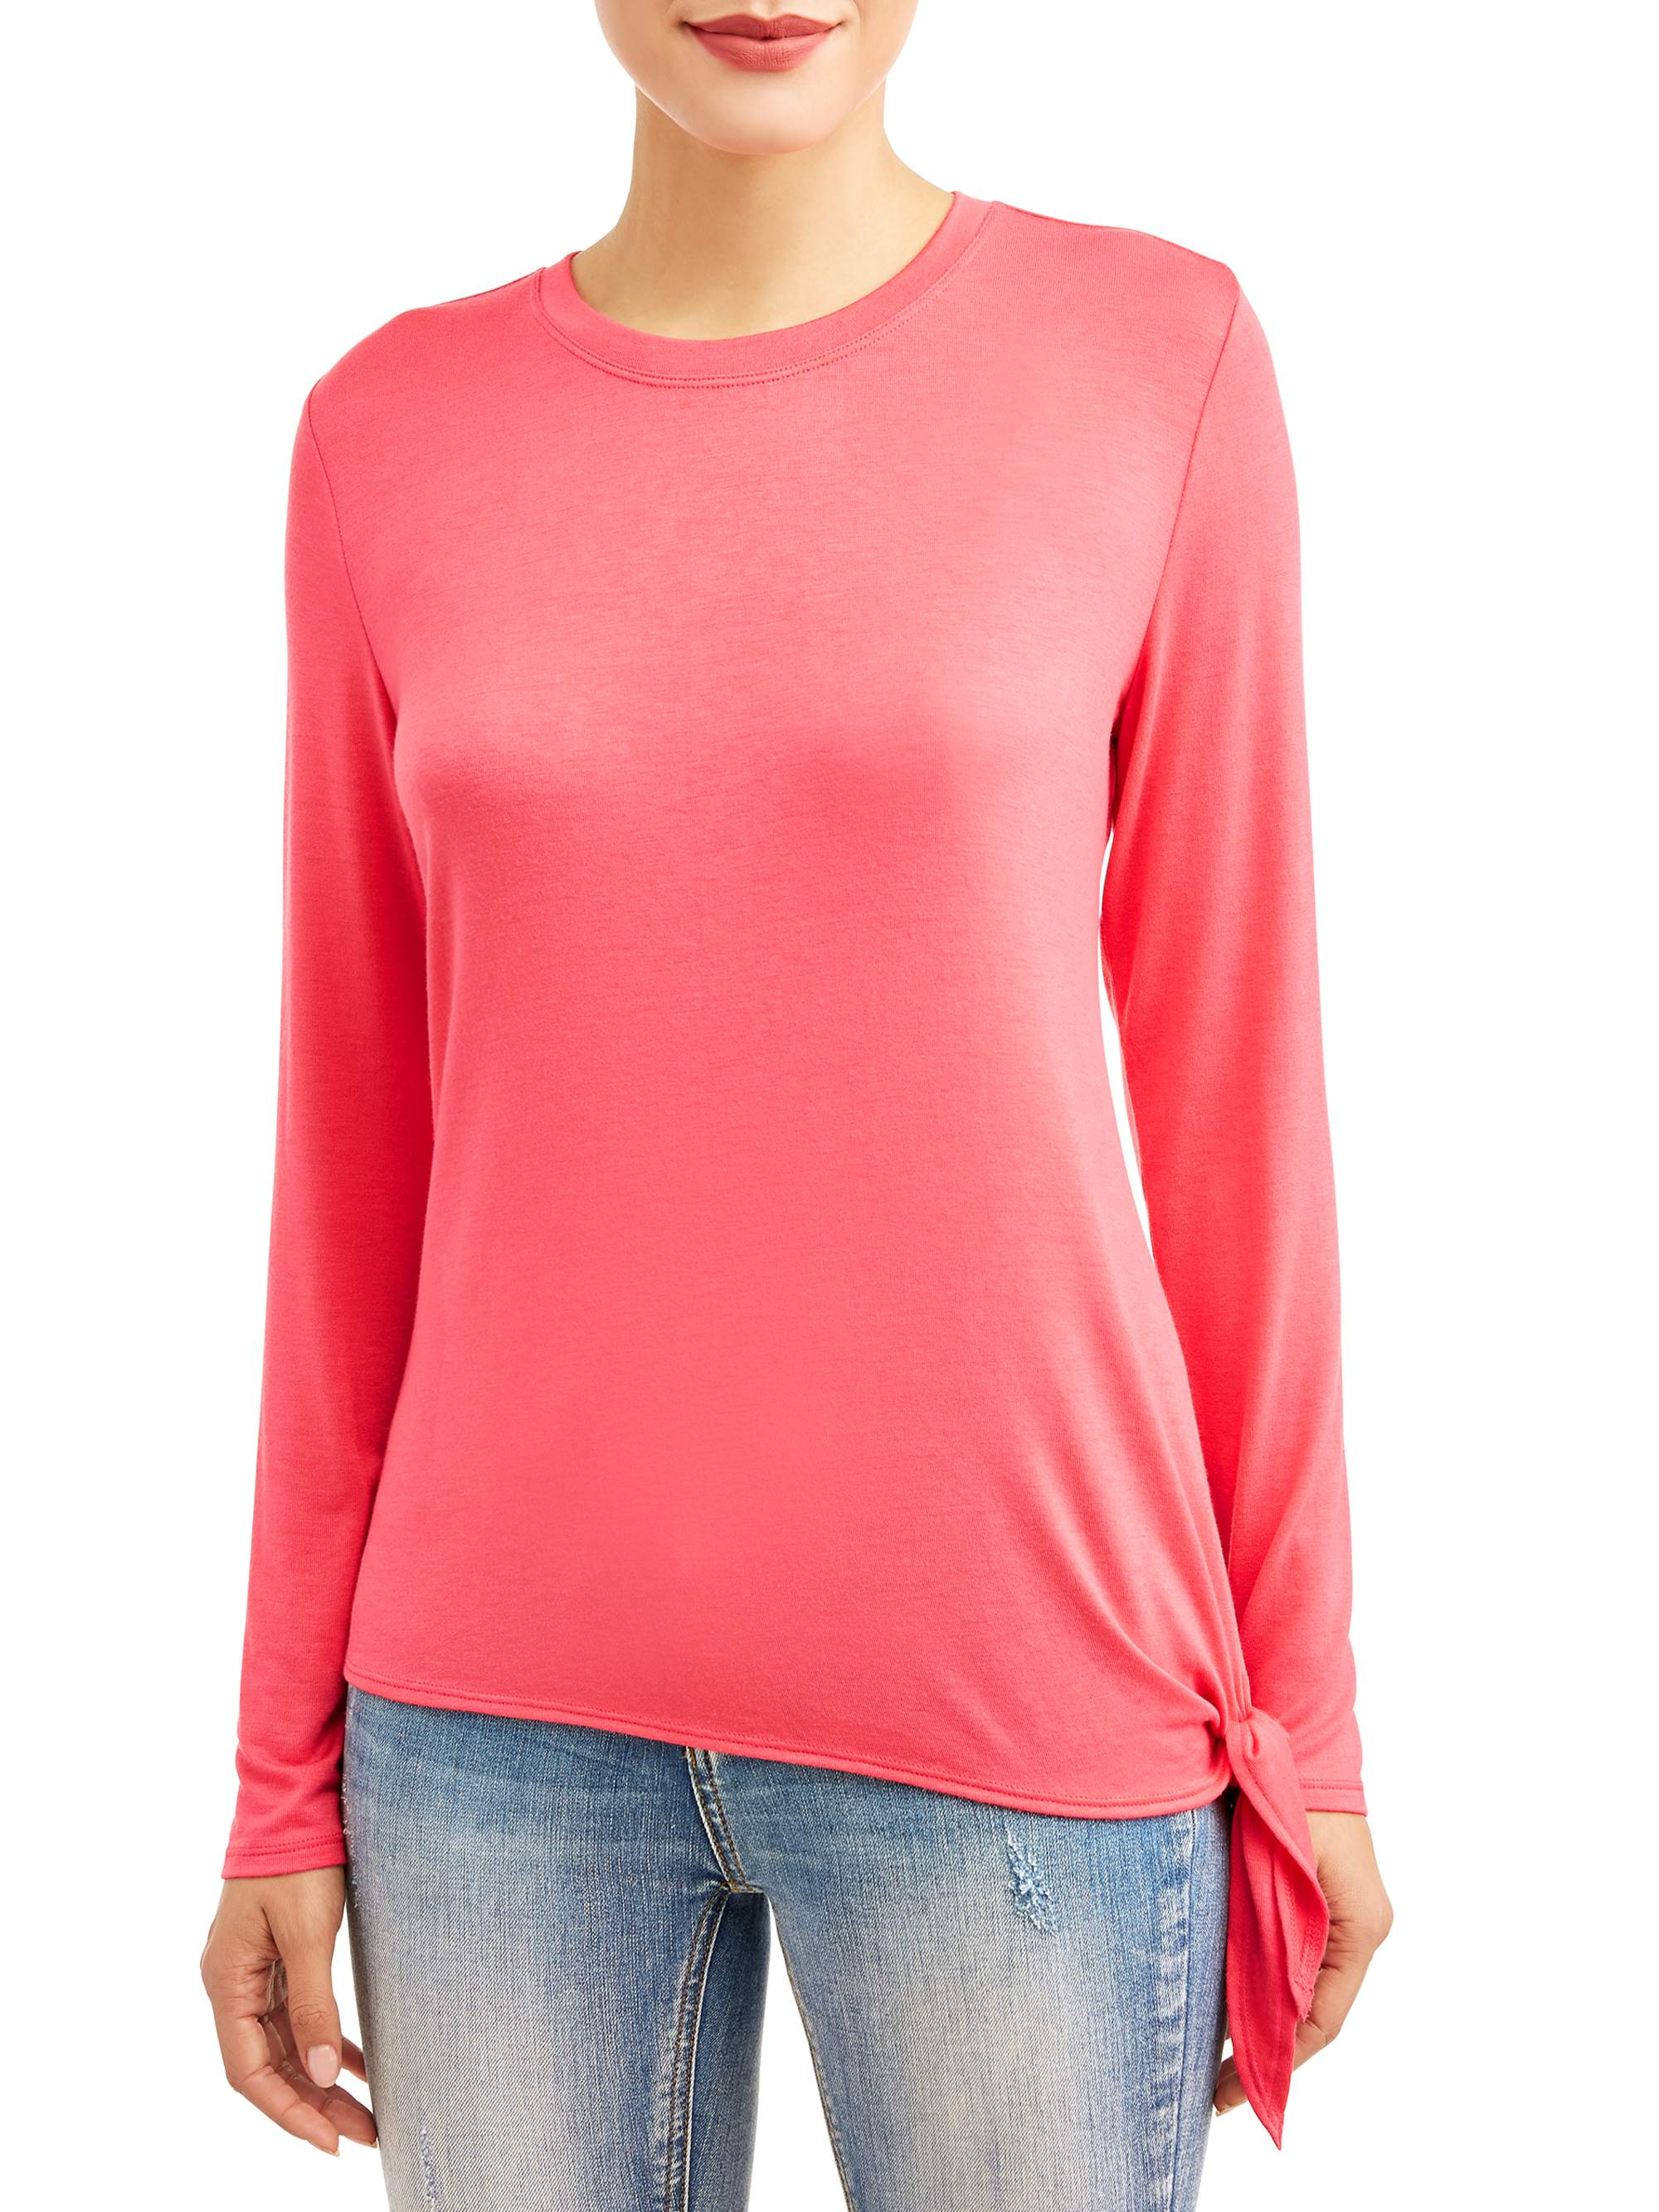 Women's Long Sleeve Side Tie Tunic